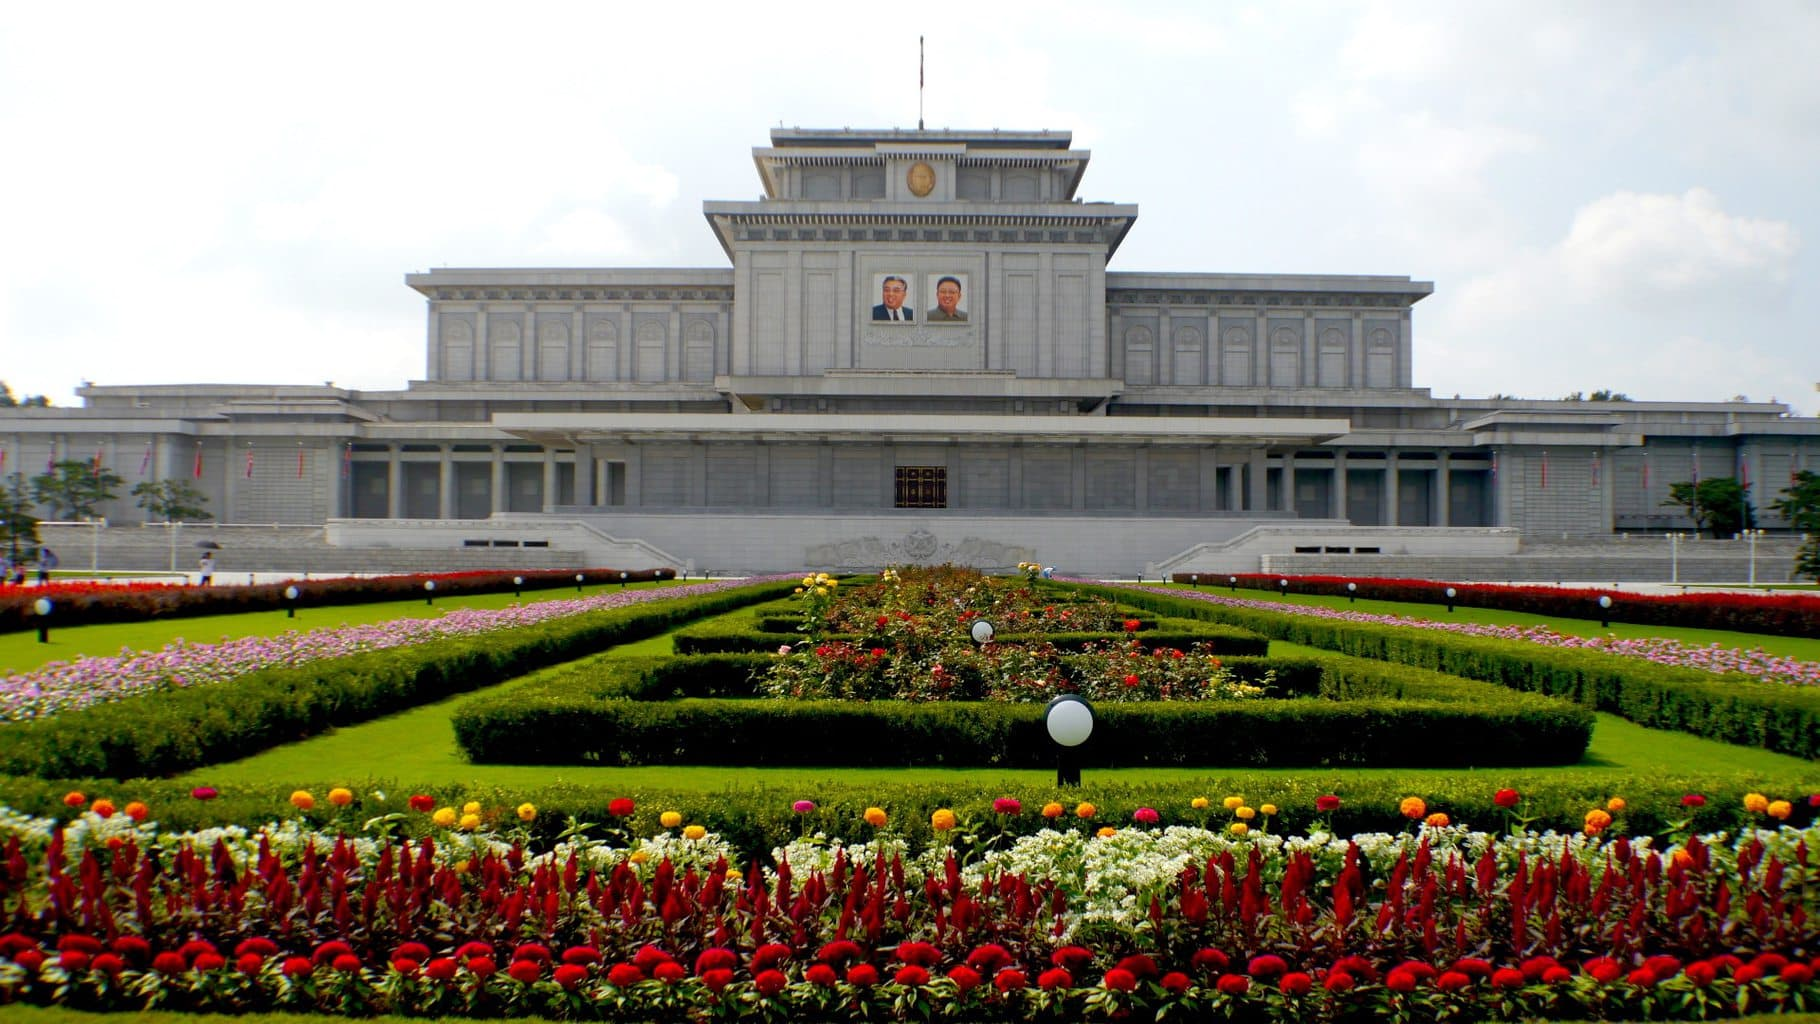 kumsusan north korea or palace of the sun